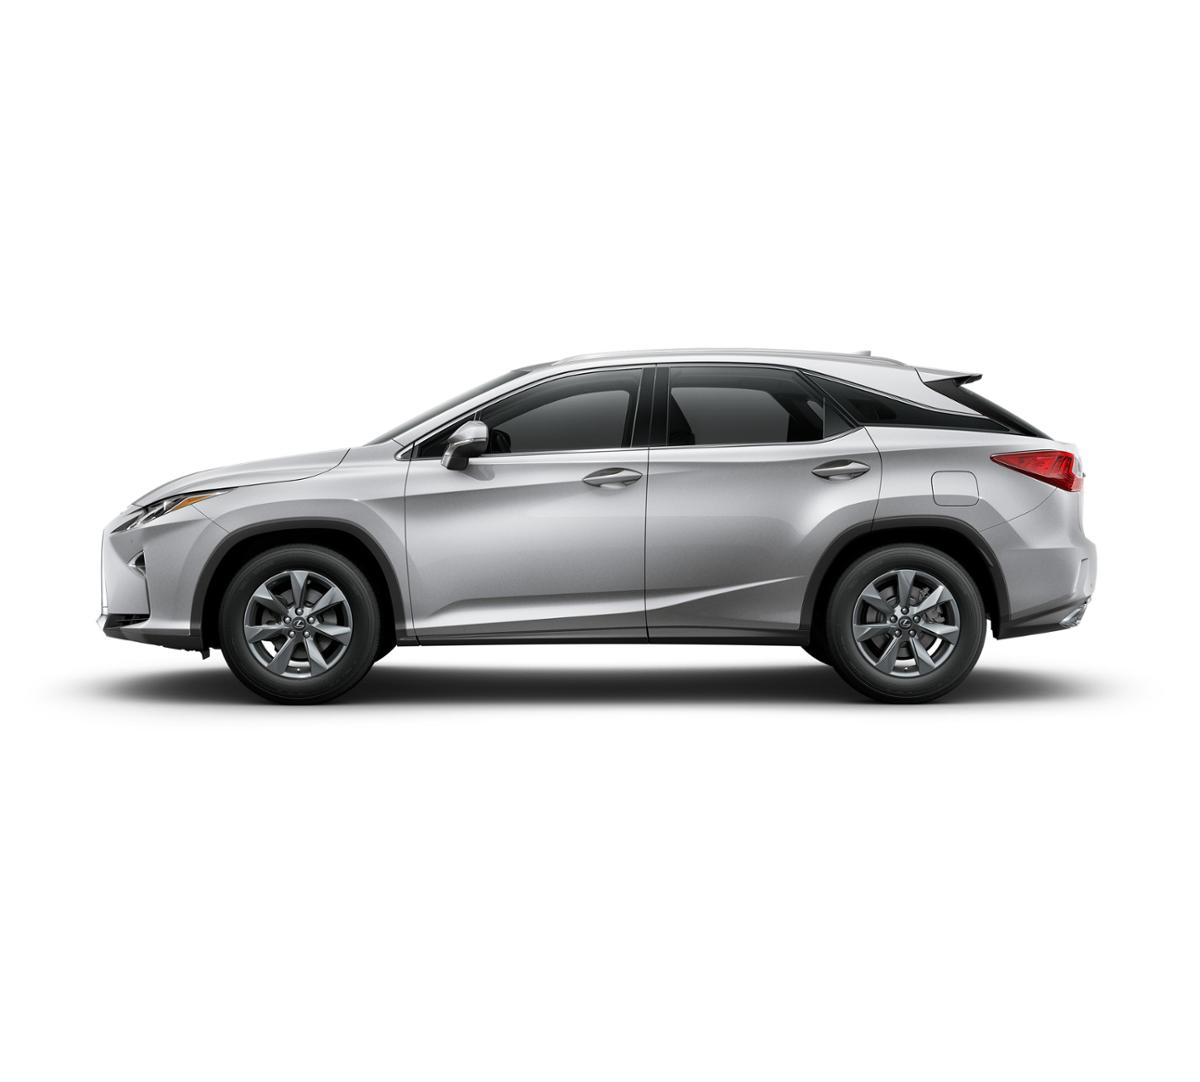 Lexus Rx 350 Lease: New Silver Lining Metallic 2018 Lexus RX 350 In Clearwater